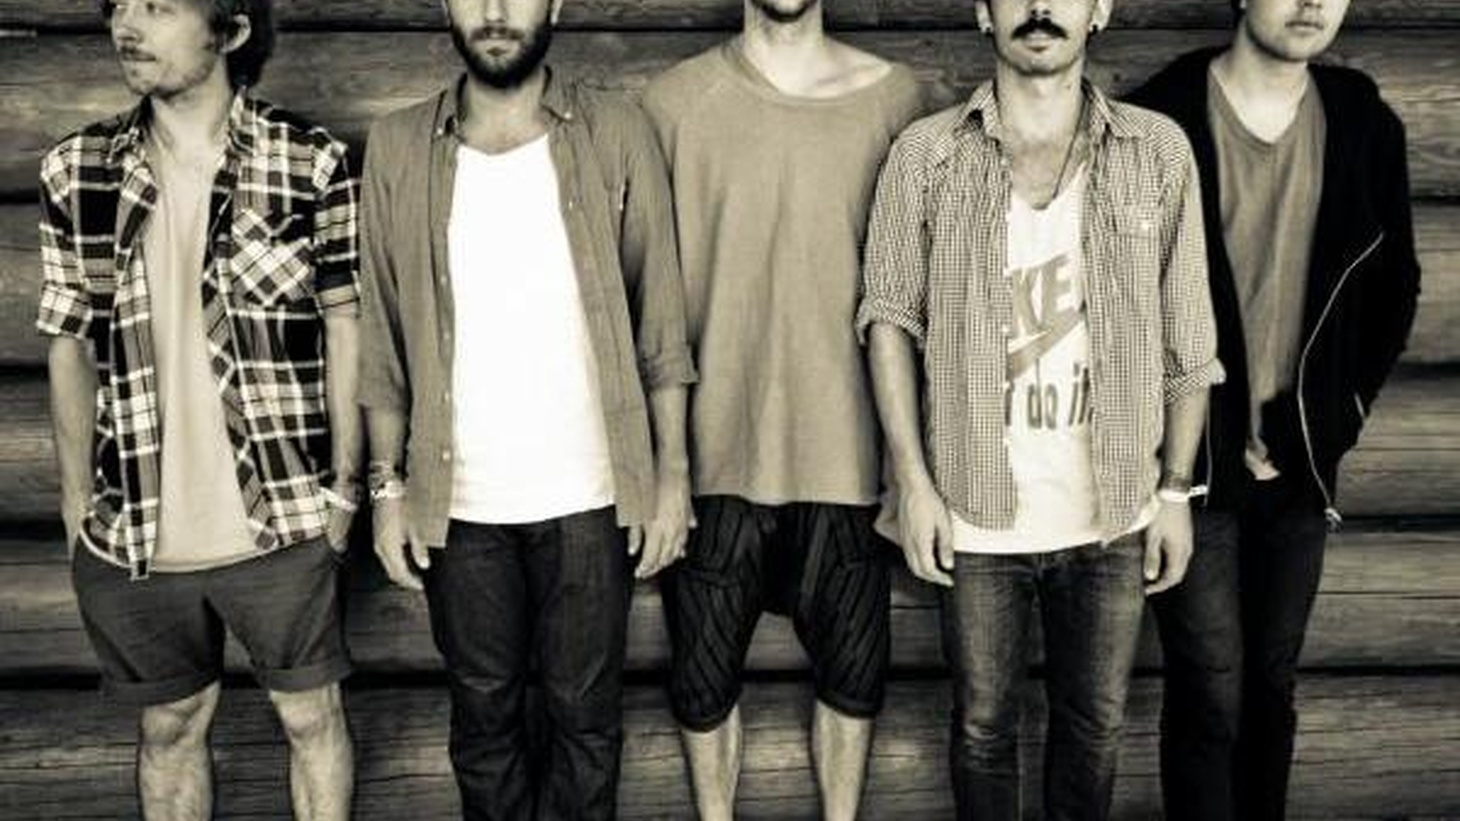 Silverlake's Local Natives have caught the ears of many KCRW deejays with their catchy harmonies and muscular arrangements. They'll join Morning Becomes Eclectic with songs from their recent release, Gorilla Manor, in the 11 o'clock hour for a live session before heading out to Coachella.